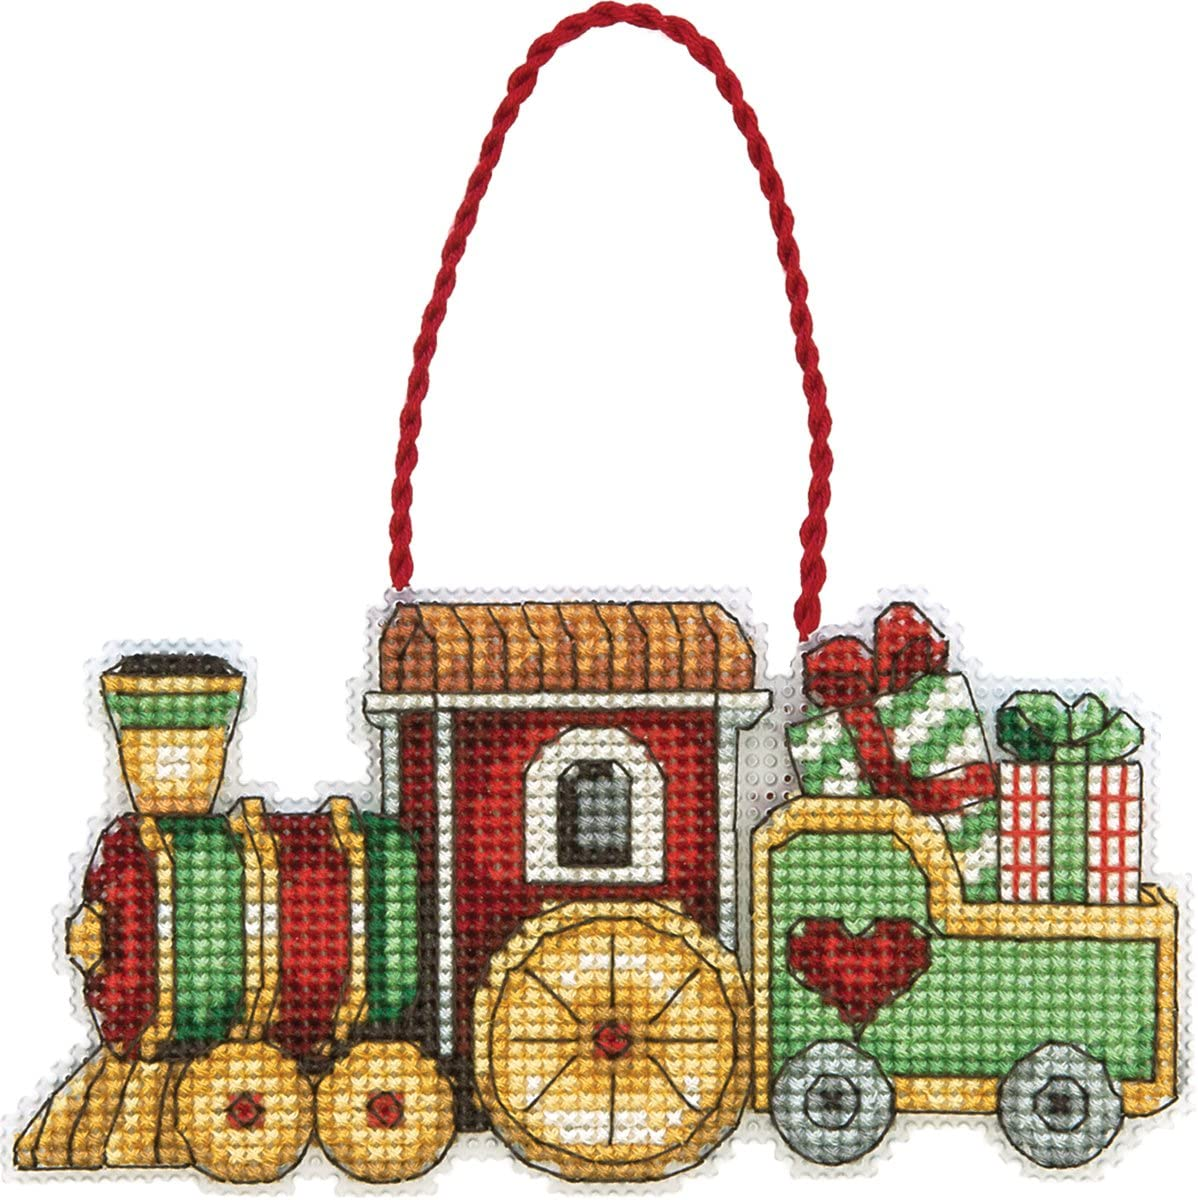 DIMENSIONS Susan Winget Train Ornament Counted Cross Stitch Kit-3-3/4 X2-1/4 14 Count Plastic Canvas